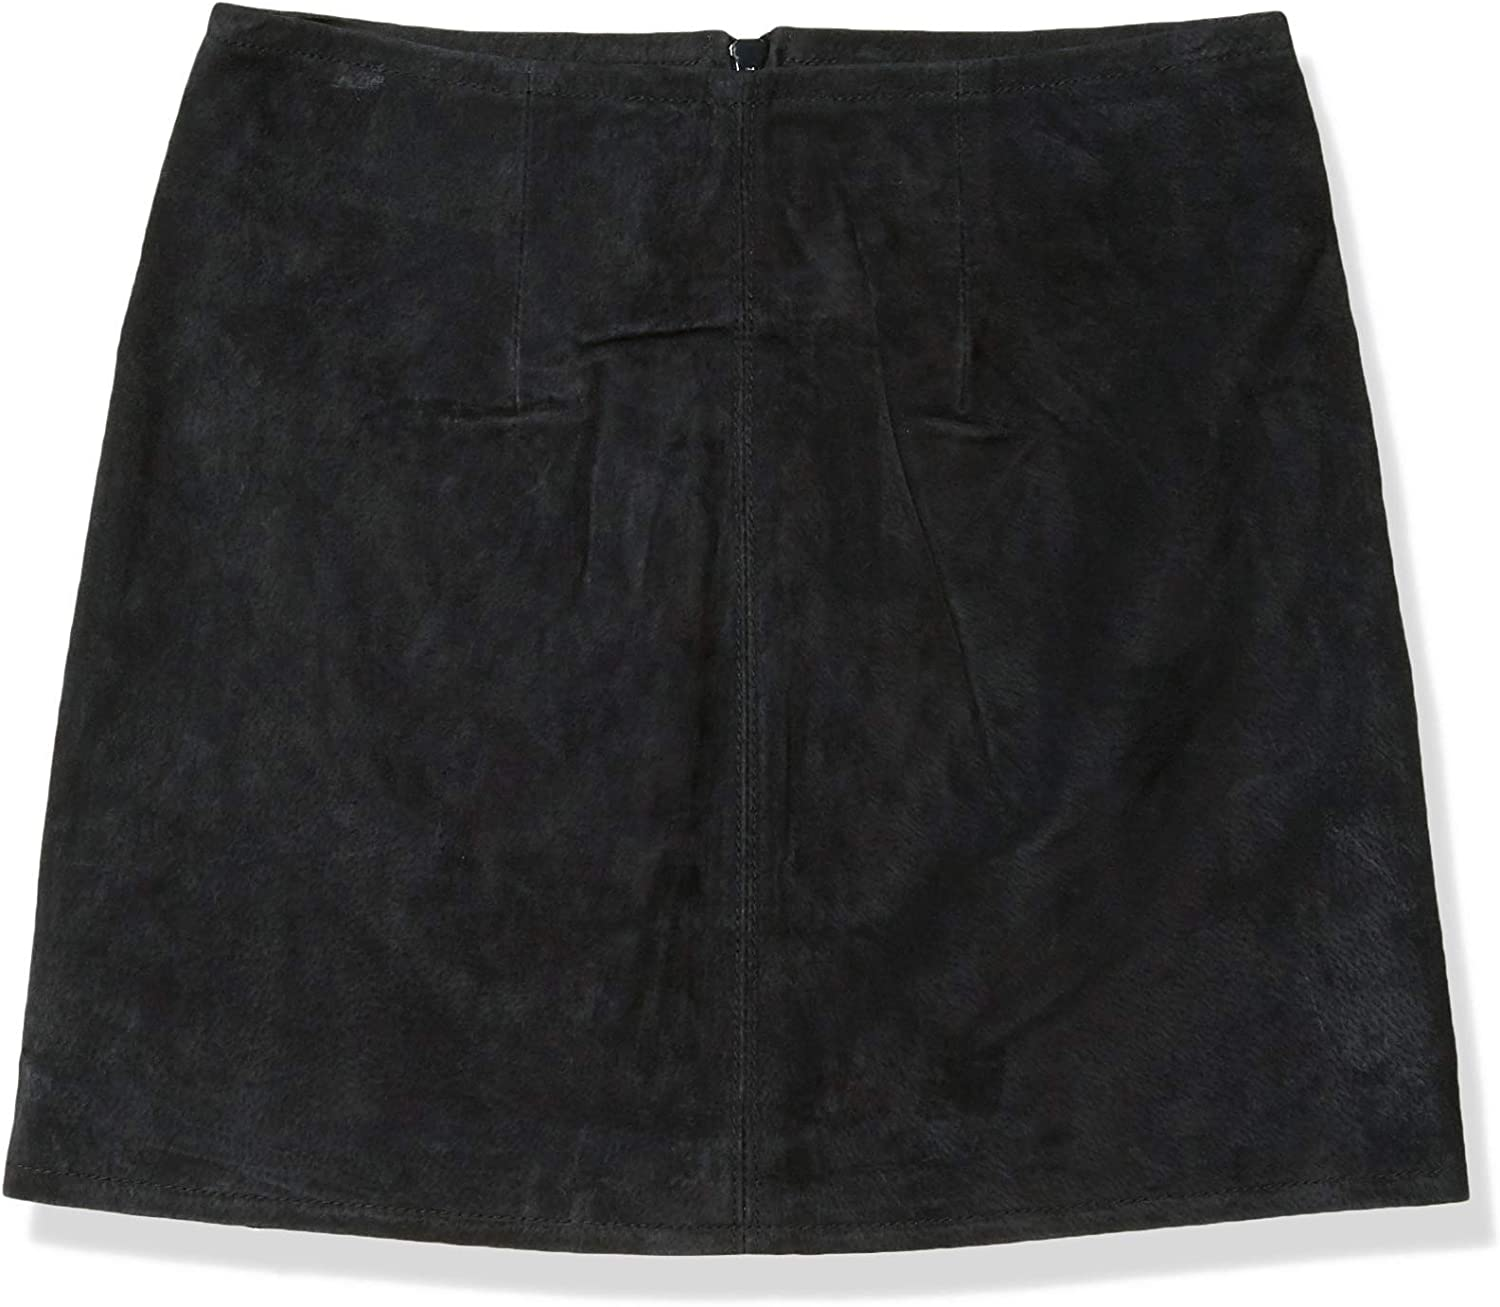 [BLANKNYC] Fashionable Real Suede Mini Skirt for Any Occasions, Dress Or Casual Clothes, Comfortable & Stylish Clothing